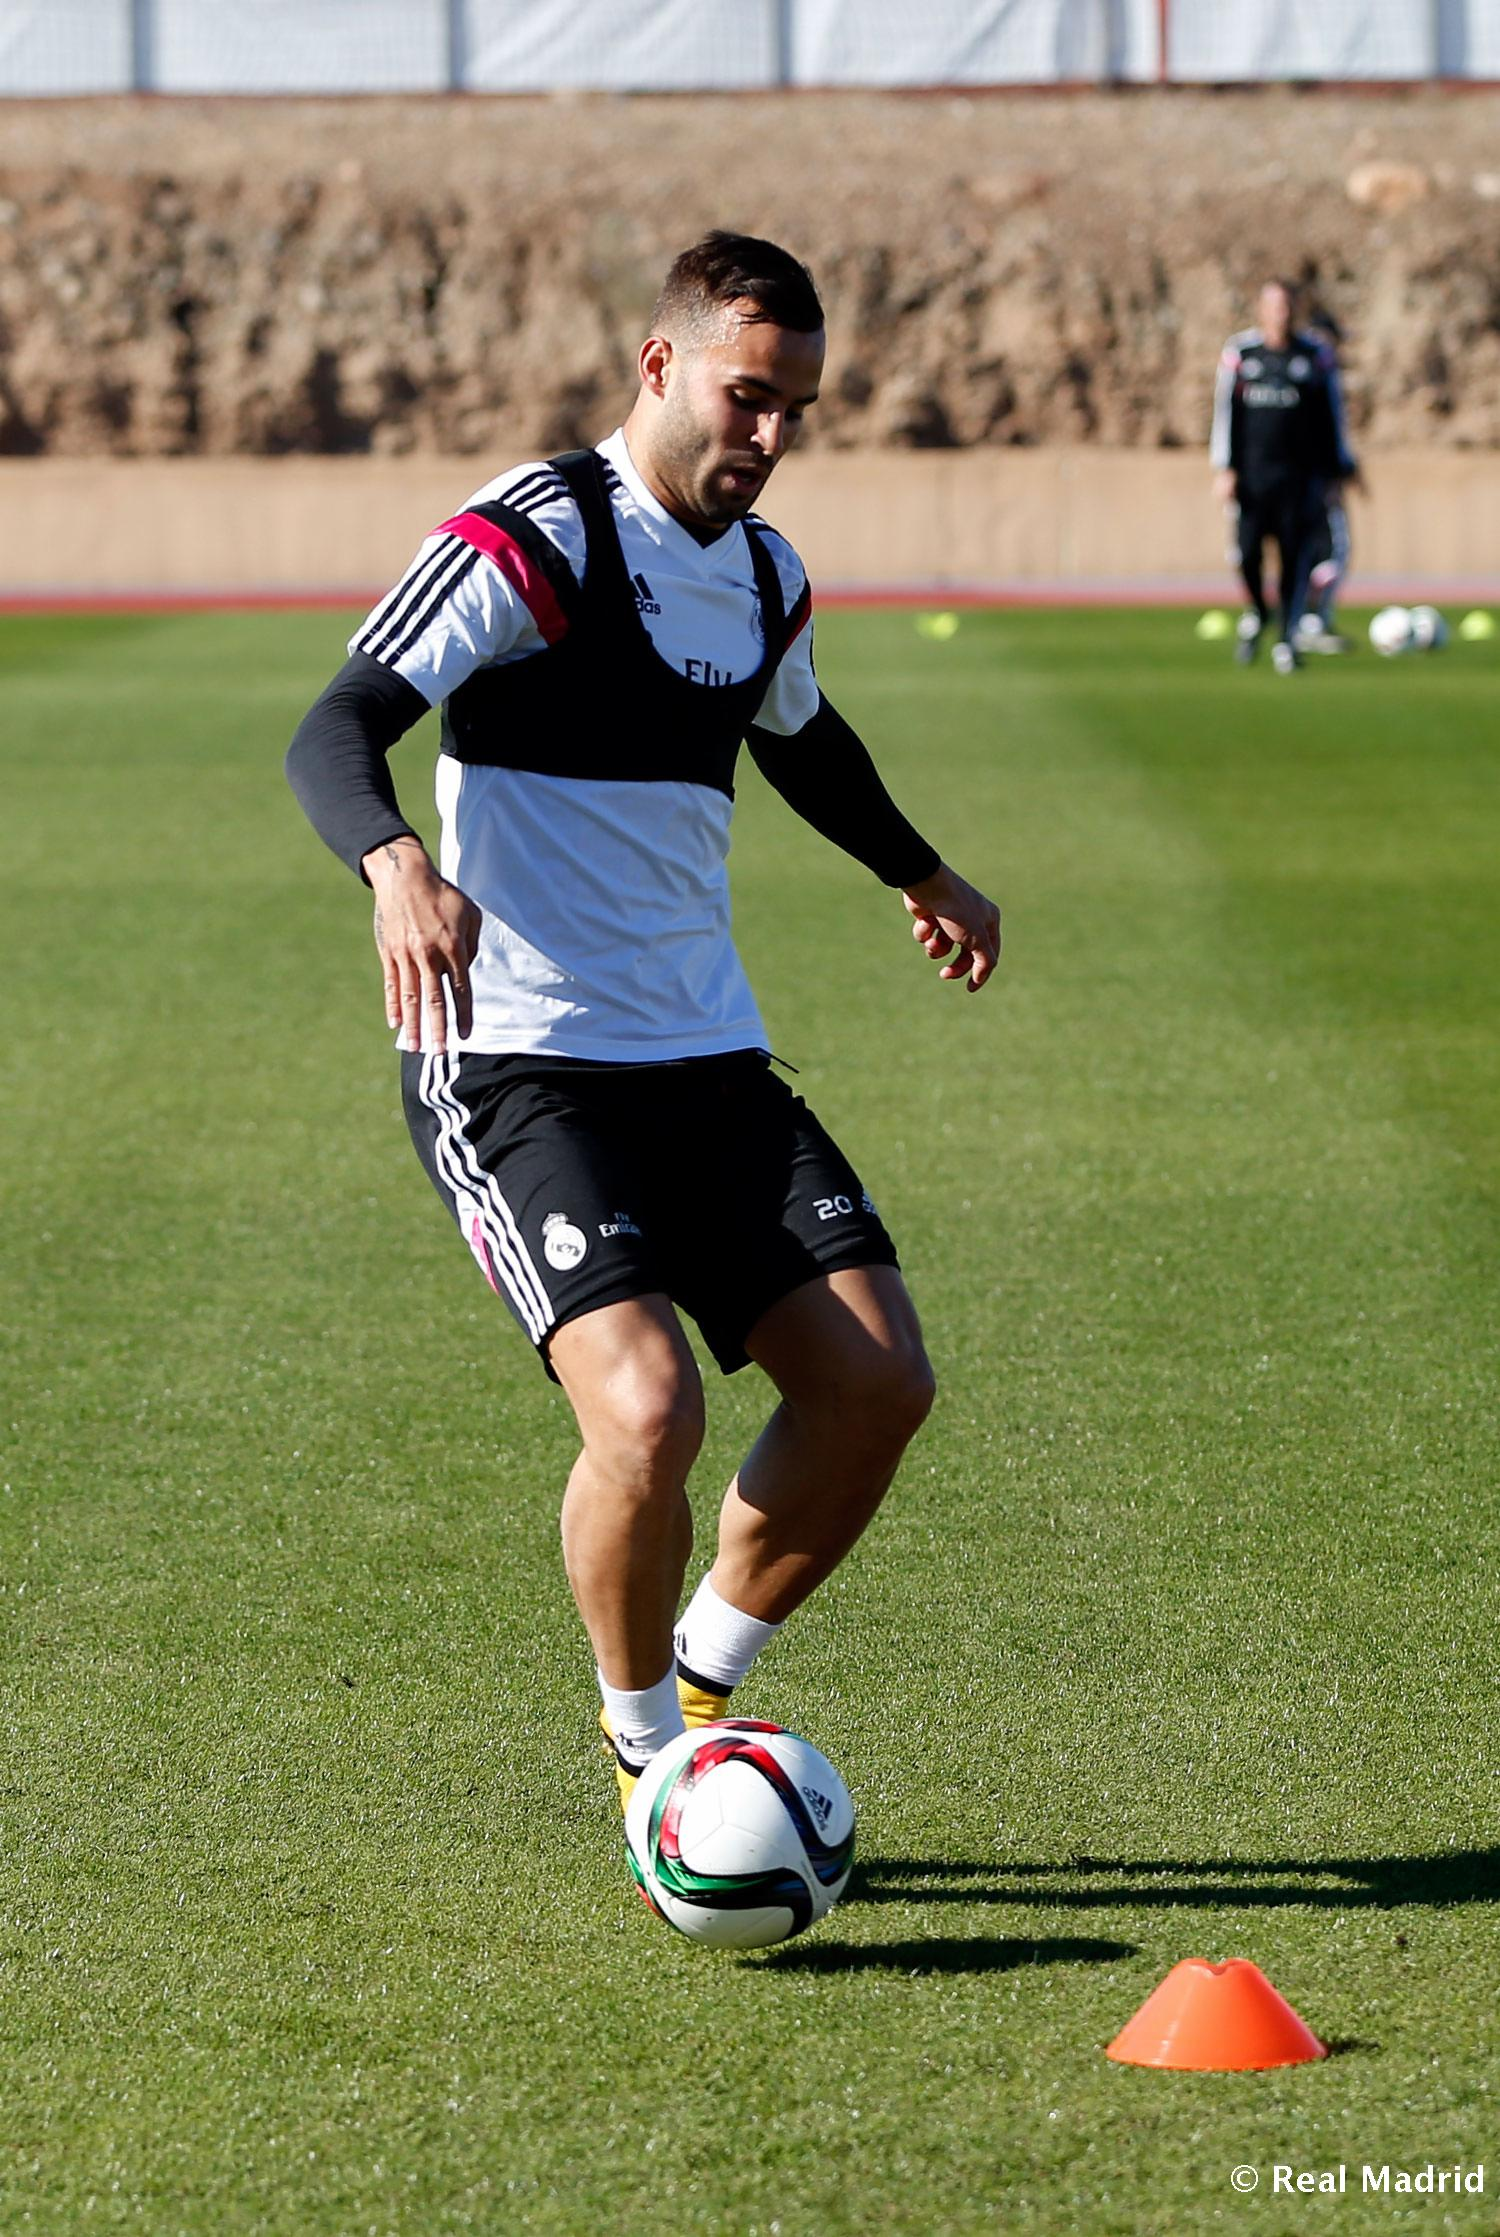 Training Bras, FutVolley, Keepy Uppy & Other Tales From Marrakech ...